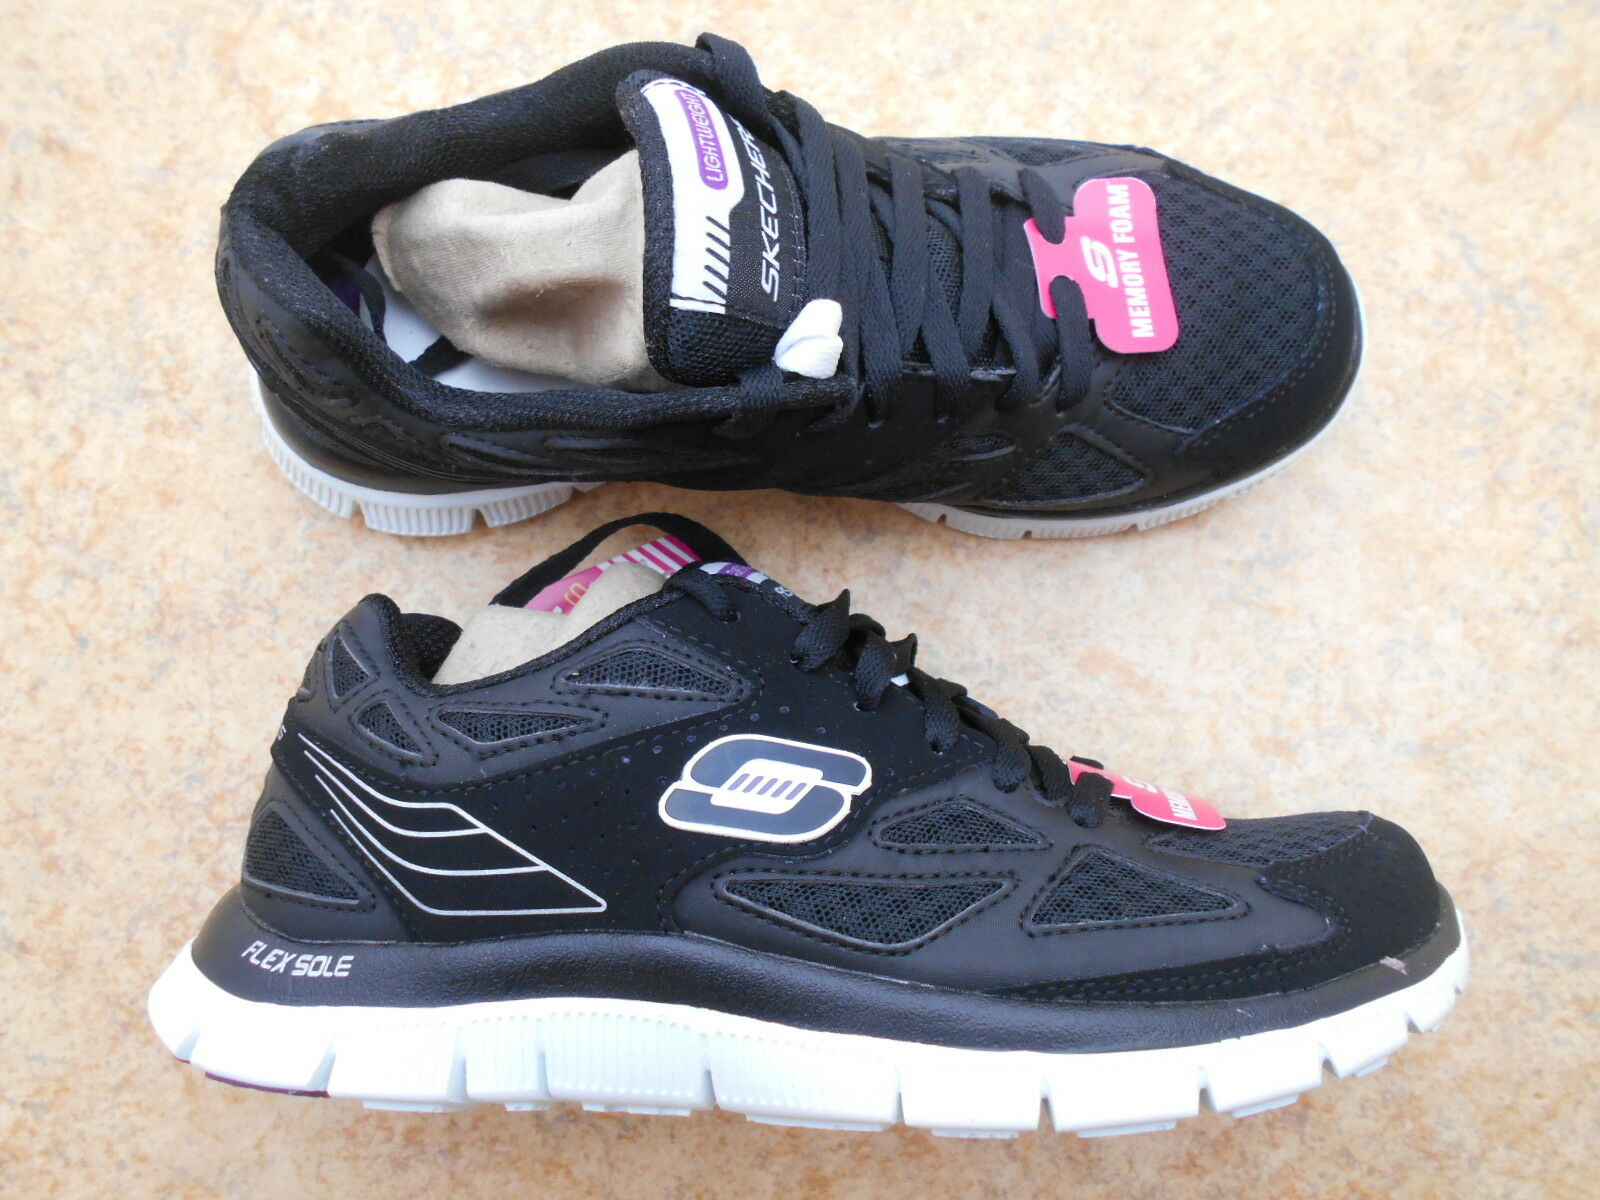 Neuf  Top femmes girly-Lacets Baskets Taille 35 NEUF  Skechers  noir